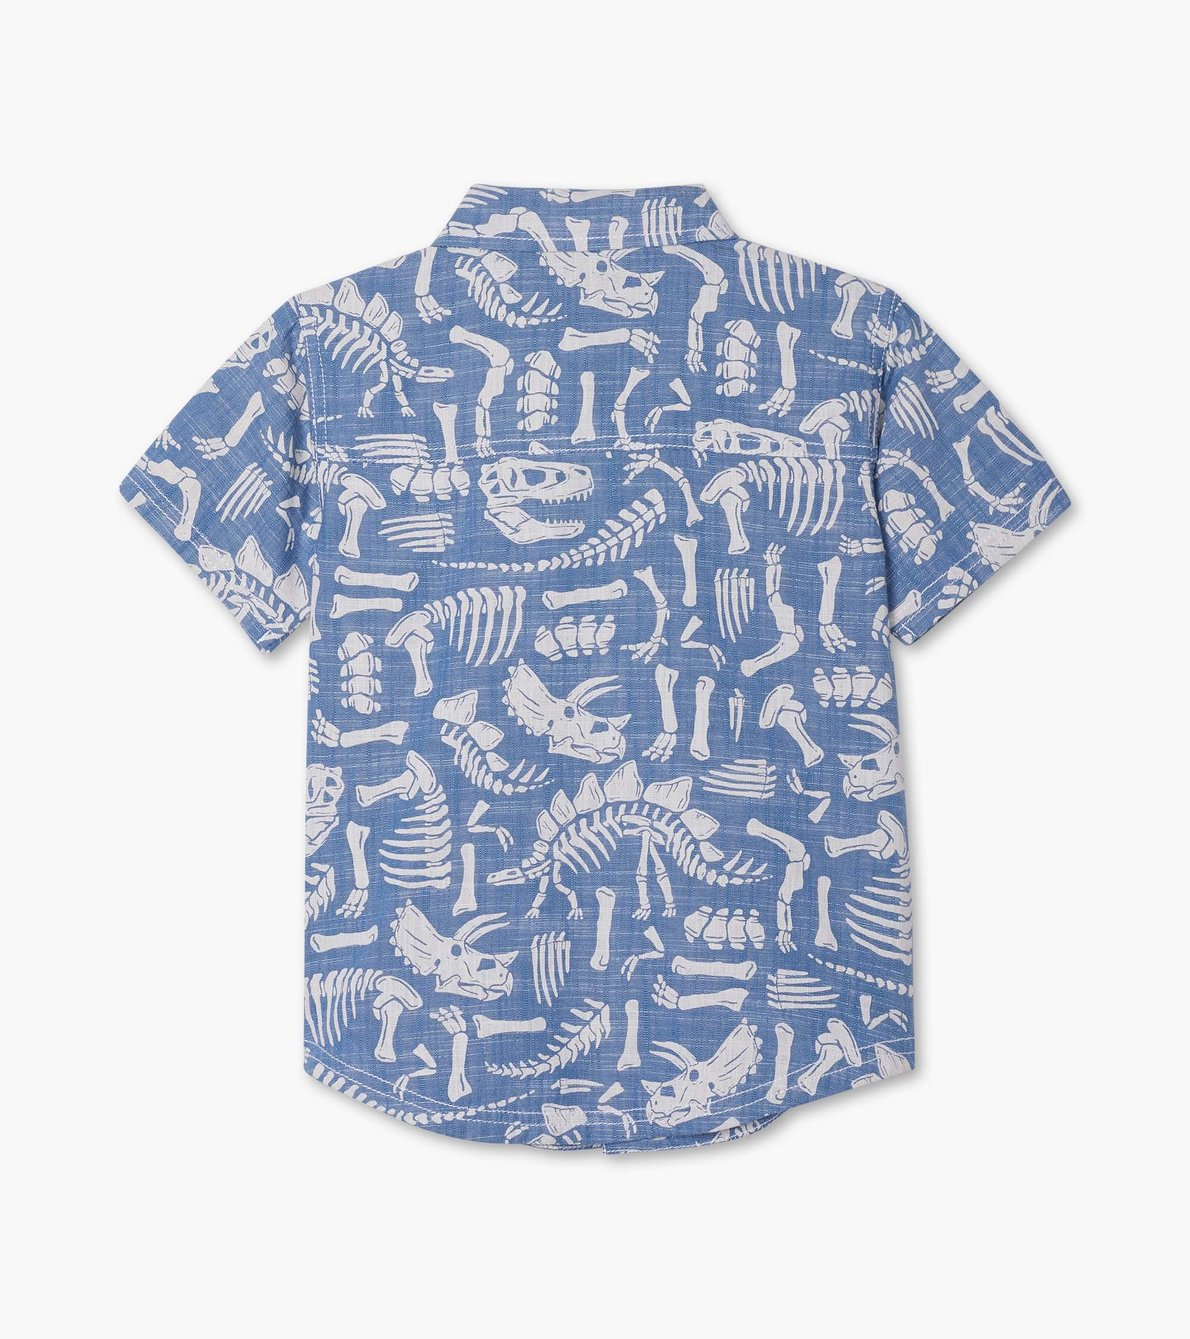 View larger image of Dino Fossils Short Sleeve Button Down Shirt